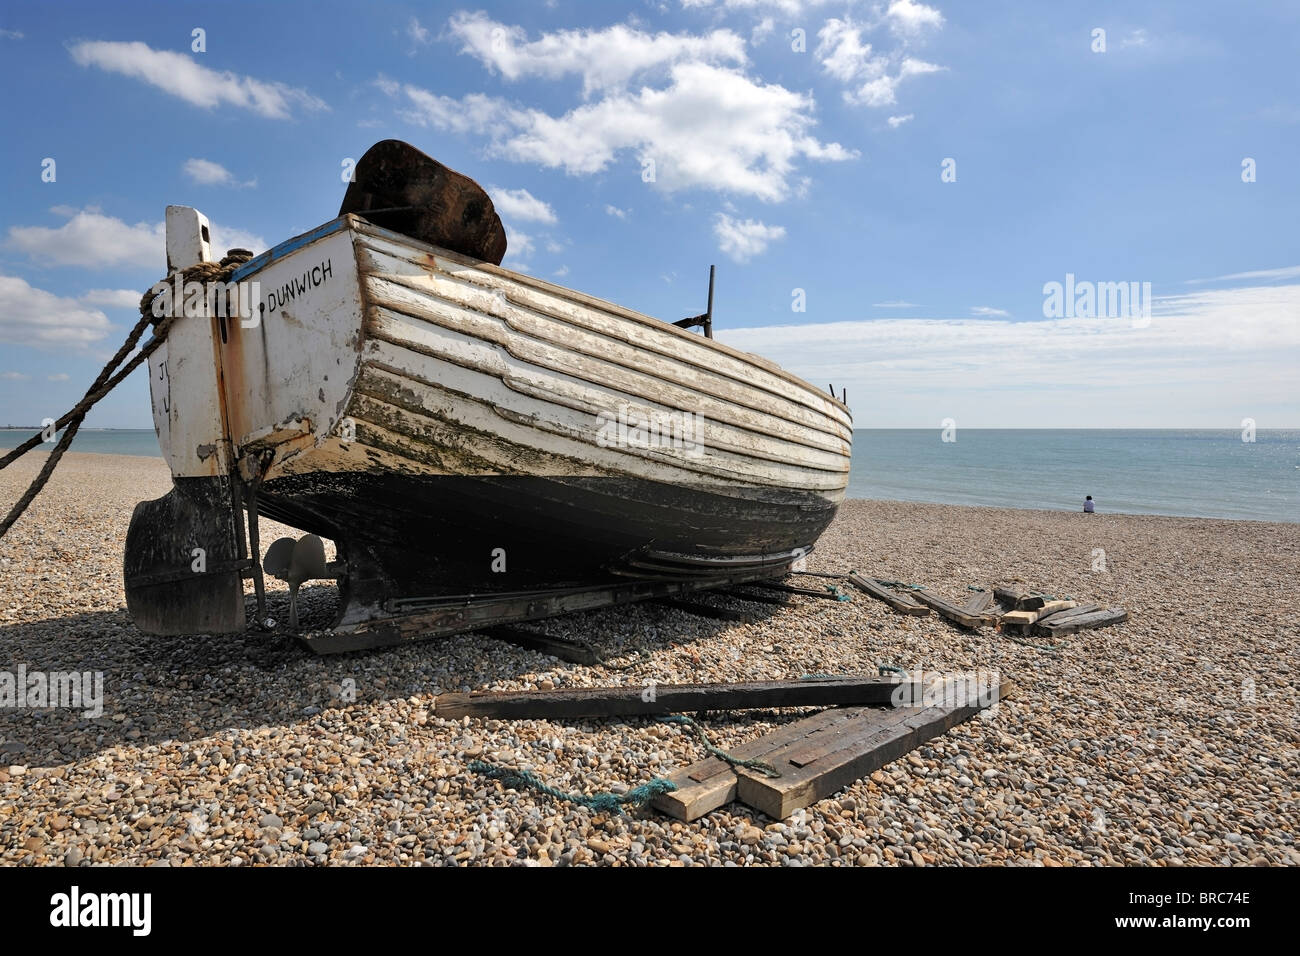 Beached fishing boat at Dunwich, Suffolk, England - Stock Image